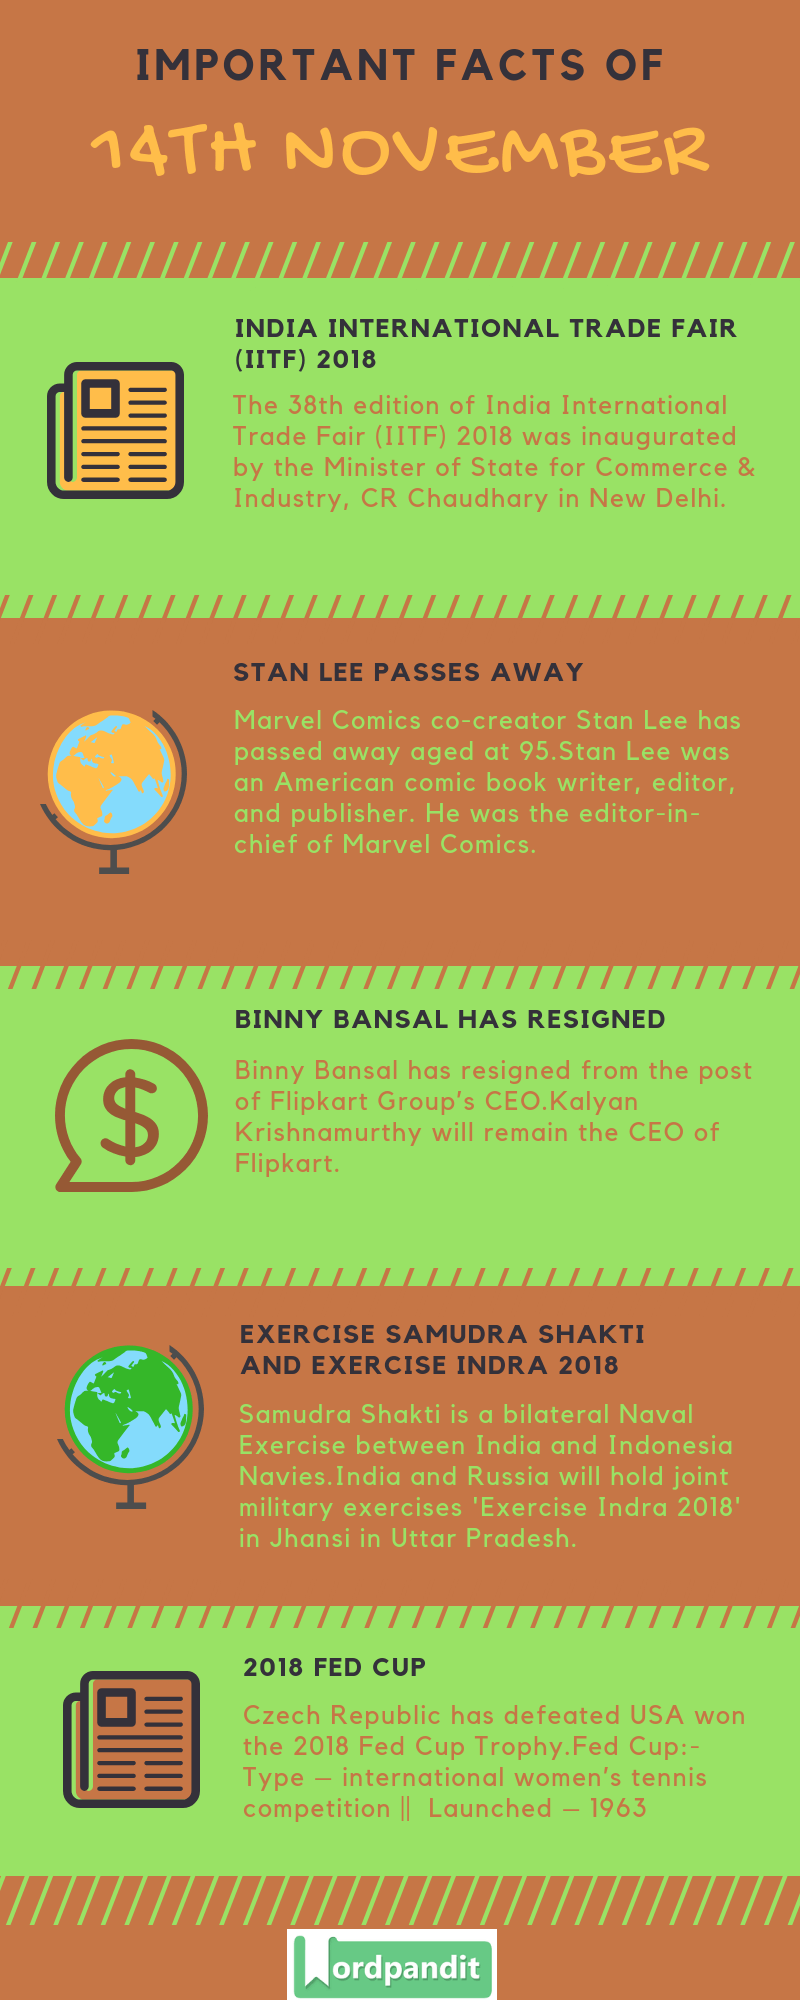 Daily Current Affairs 14 November 2018 Current Affairs Quiz 14 November 2018 Current Affairs Infographic